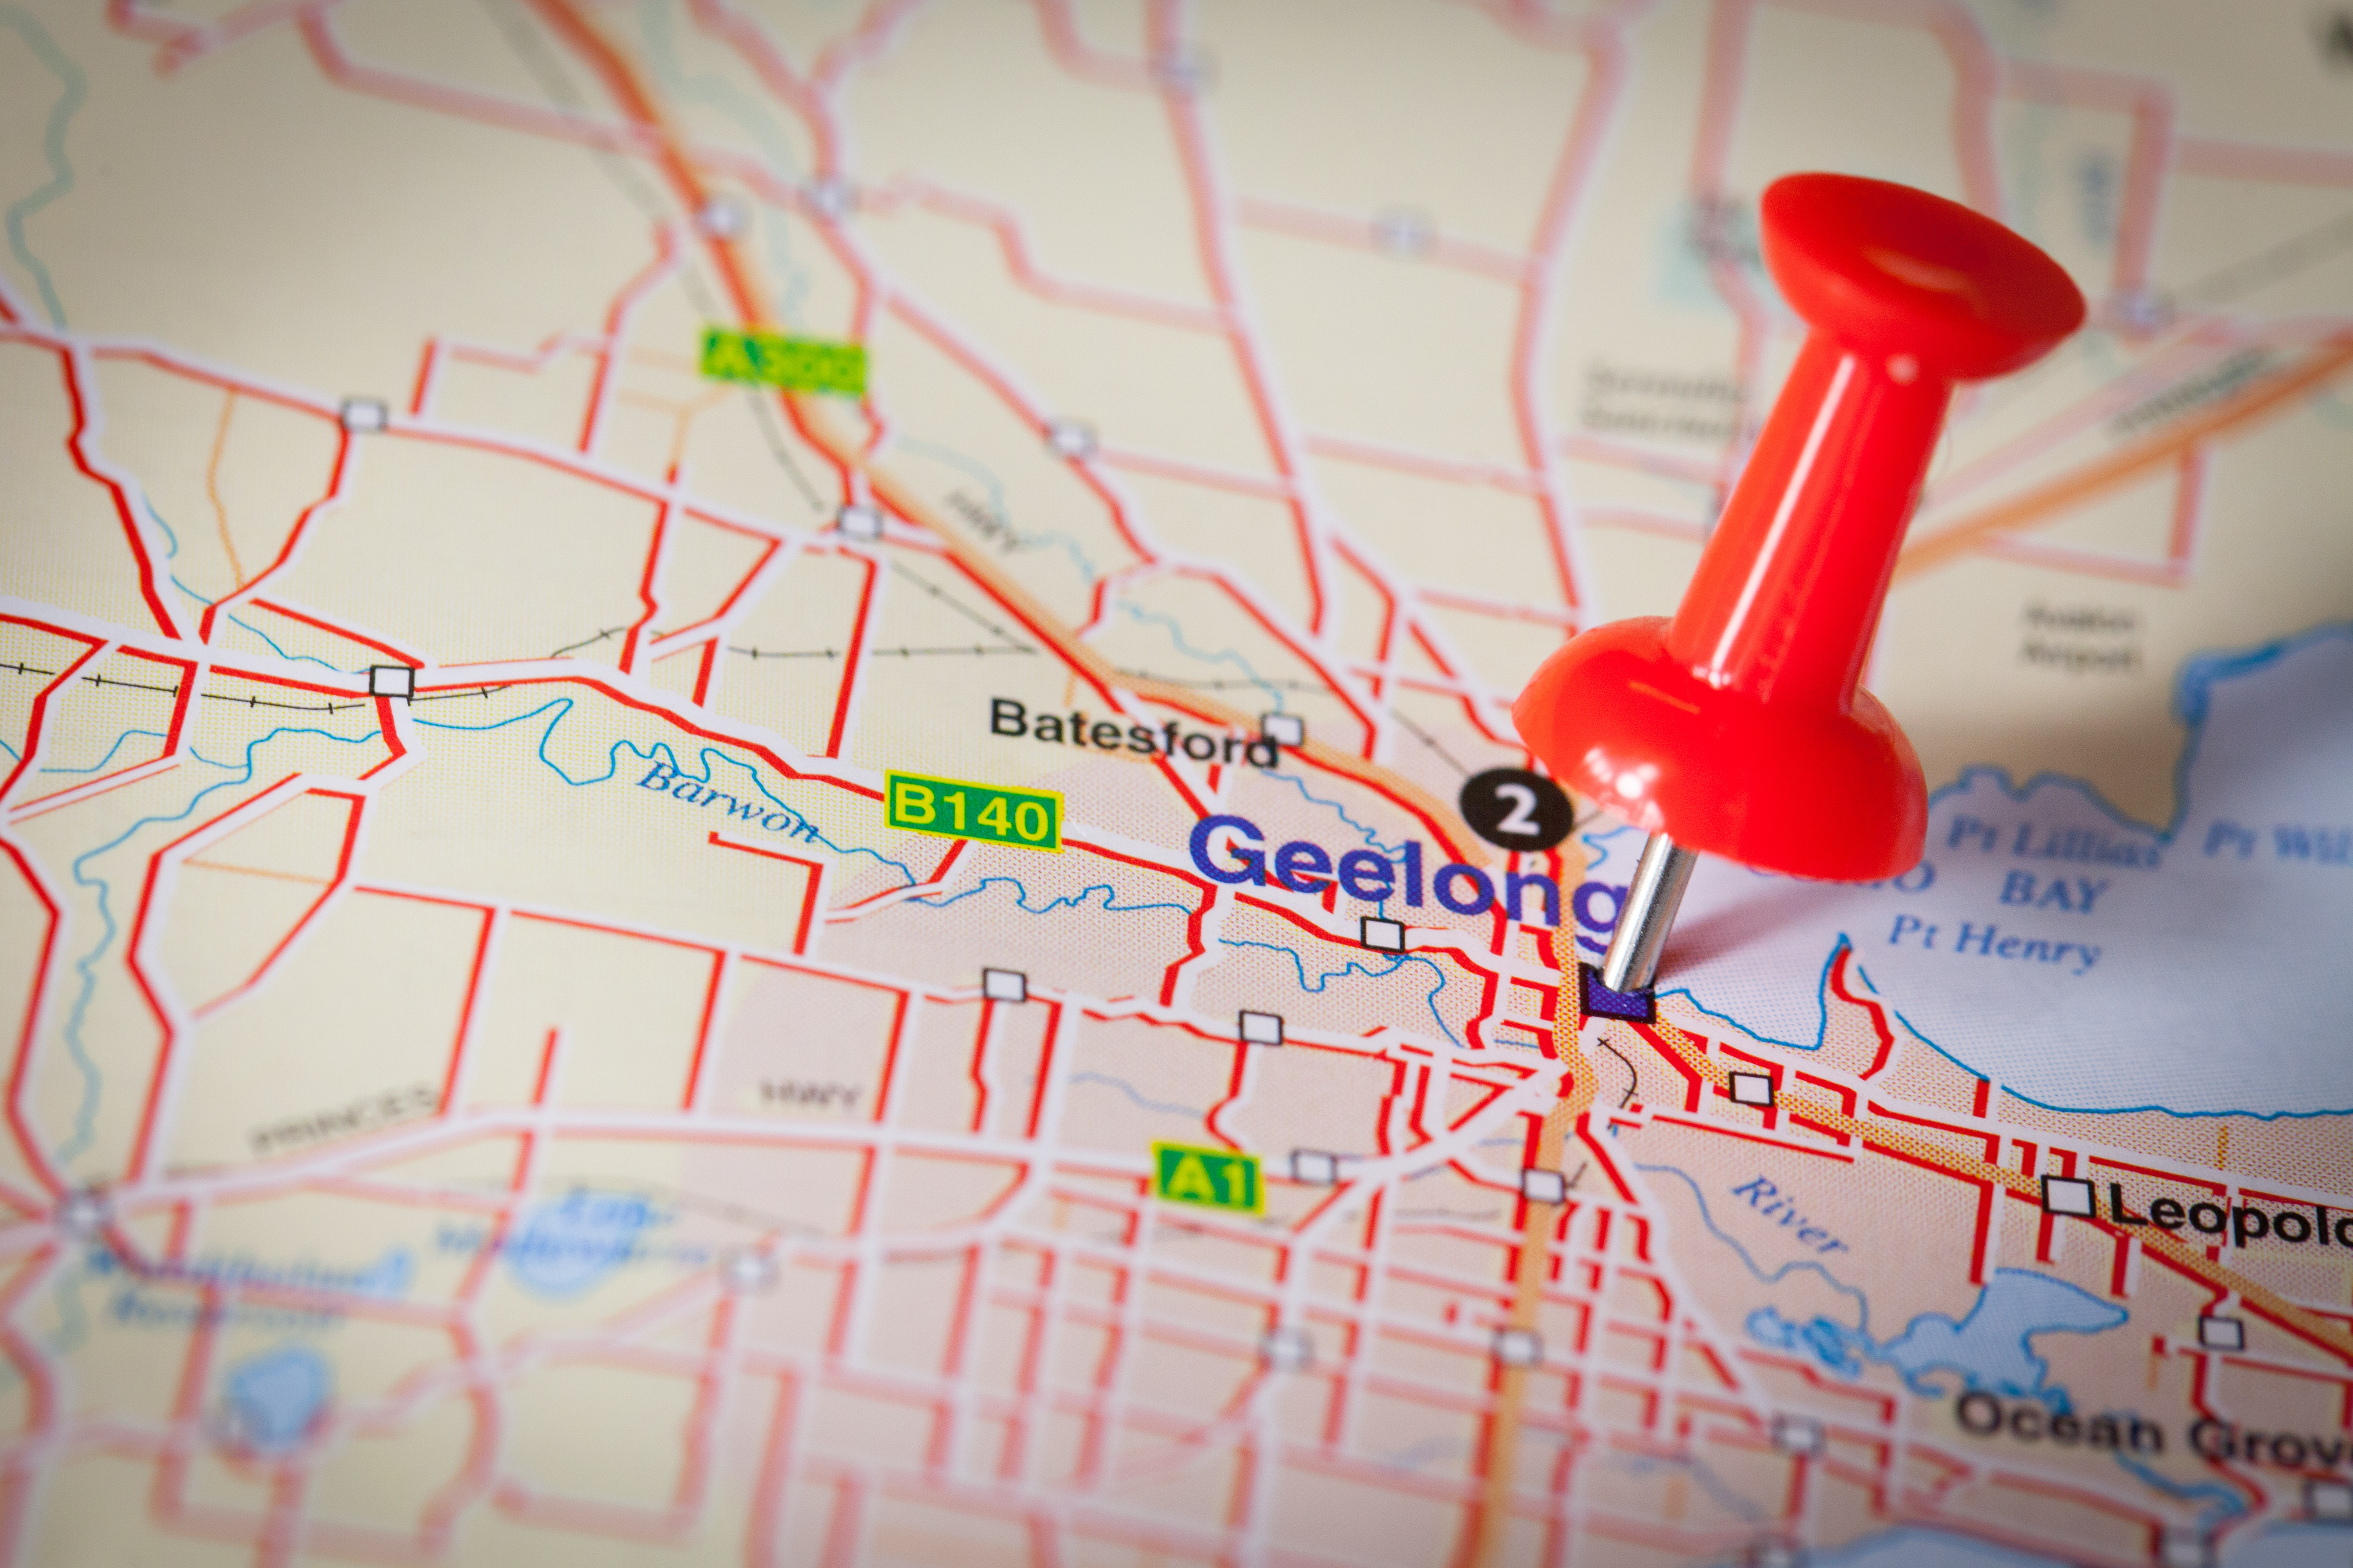 Geelong located with a push pin on a map. Victoria, Australia.